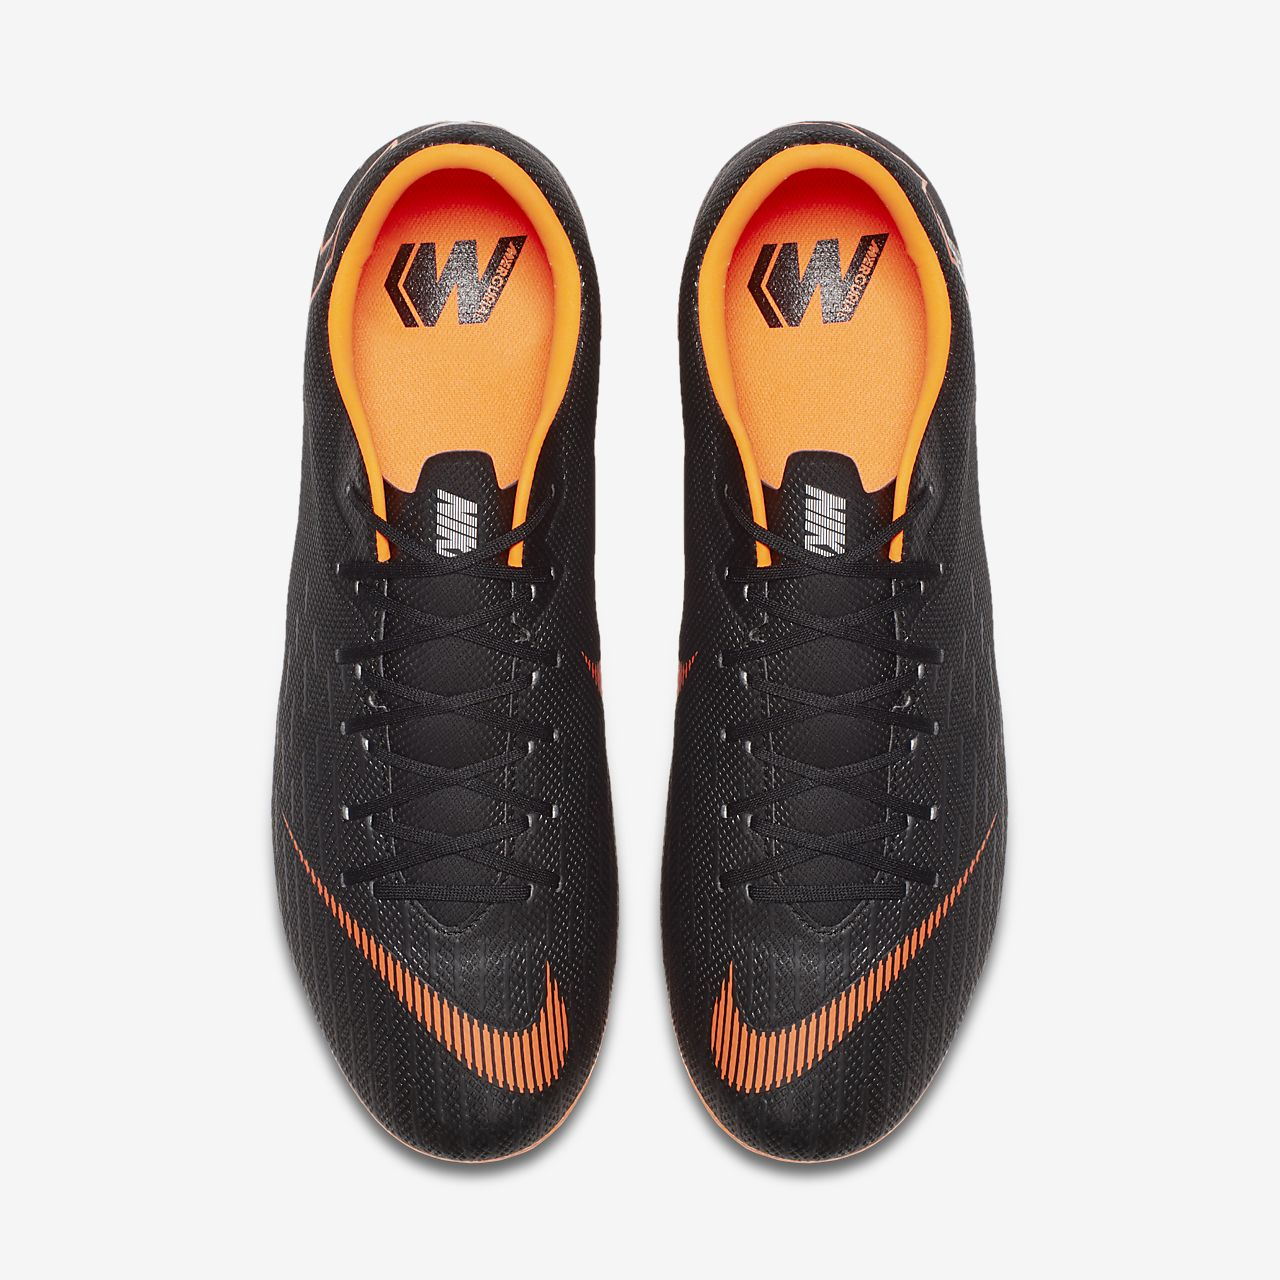 ... Nike Mercurial Vapor XII Academy Multi-Ground Soccer Cleat